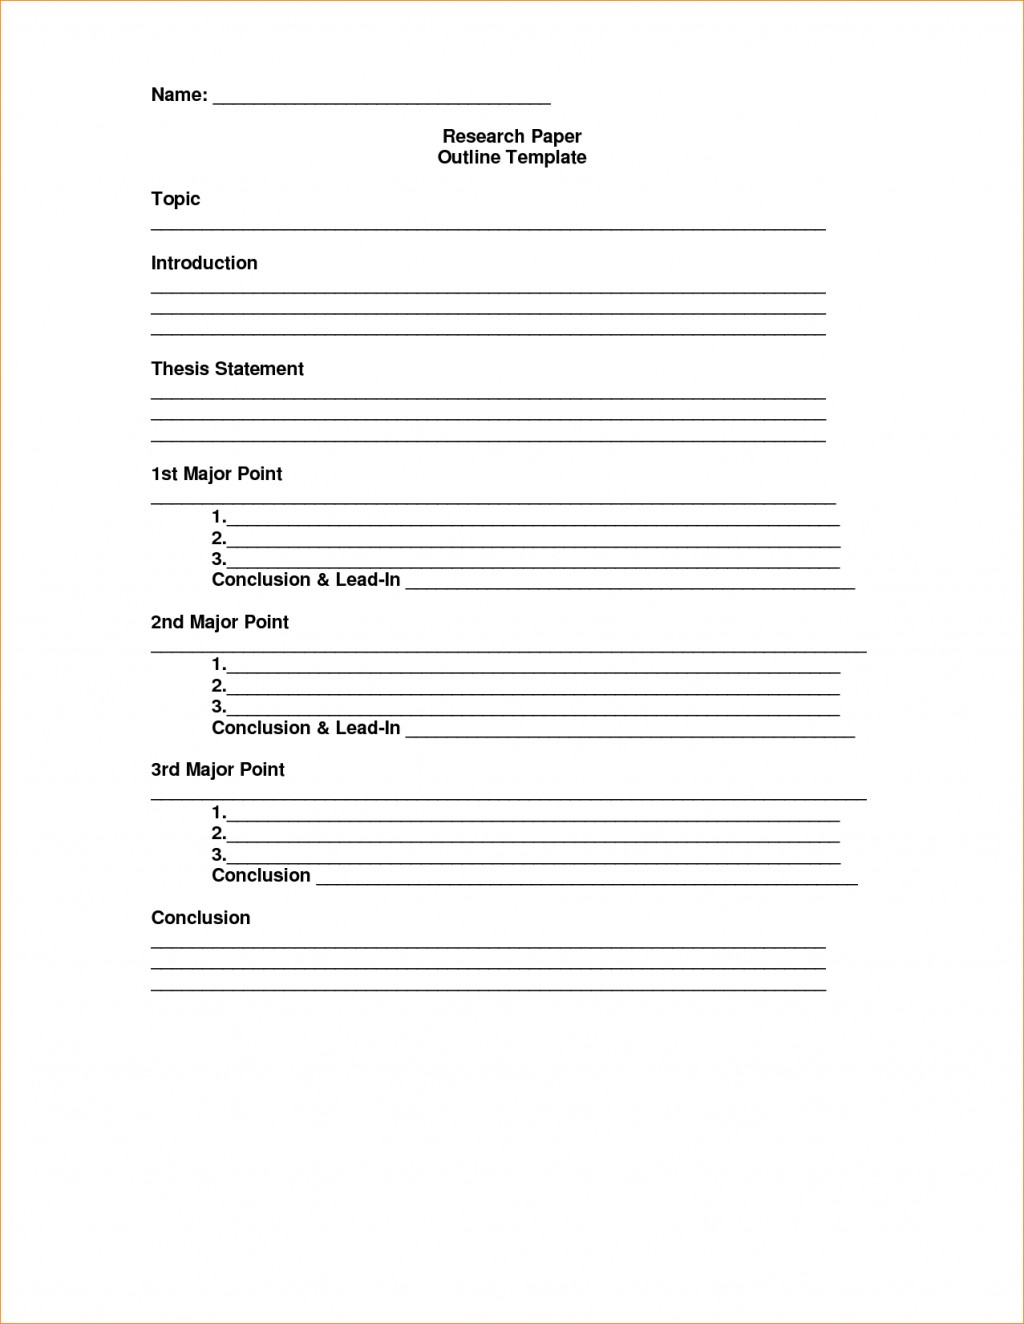 016 Note Cards Template For Research Paper Outline Astounding Example Of Notecards Large